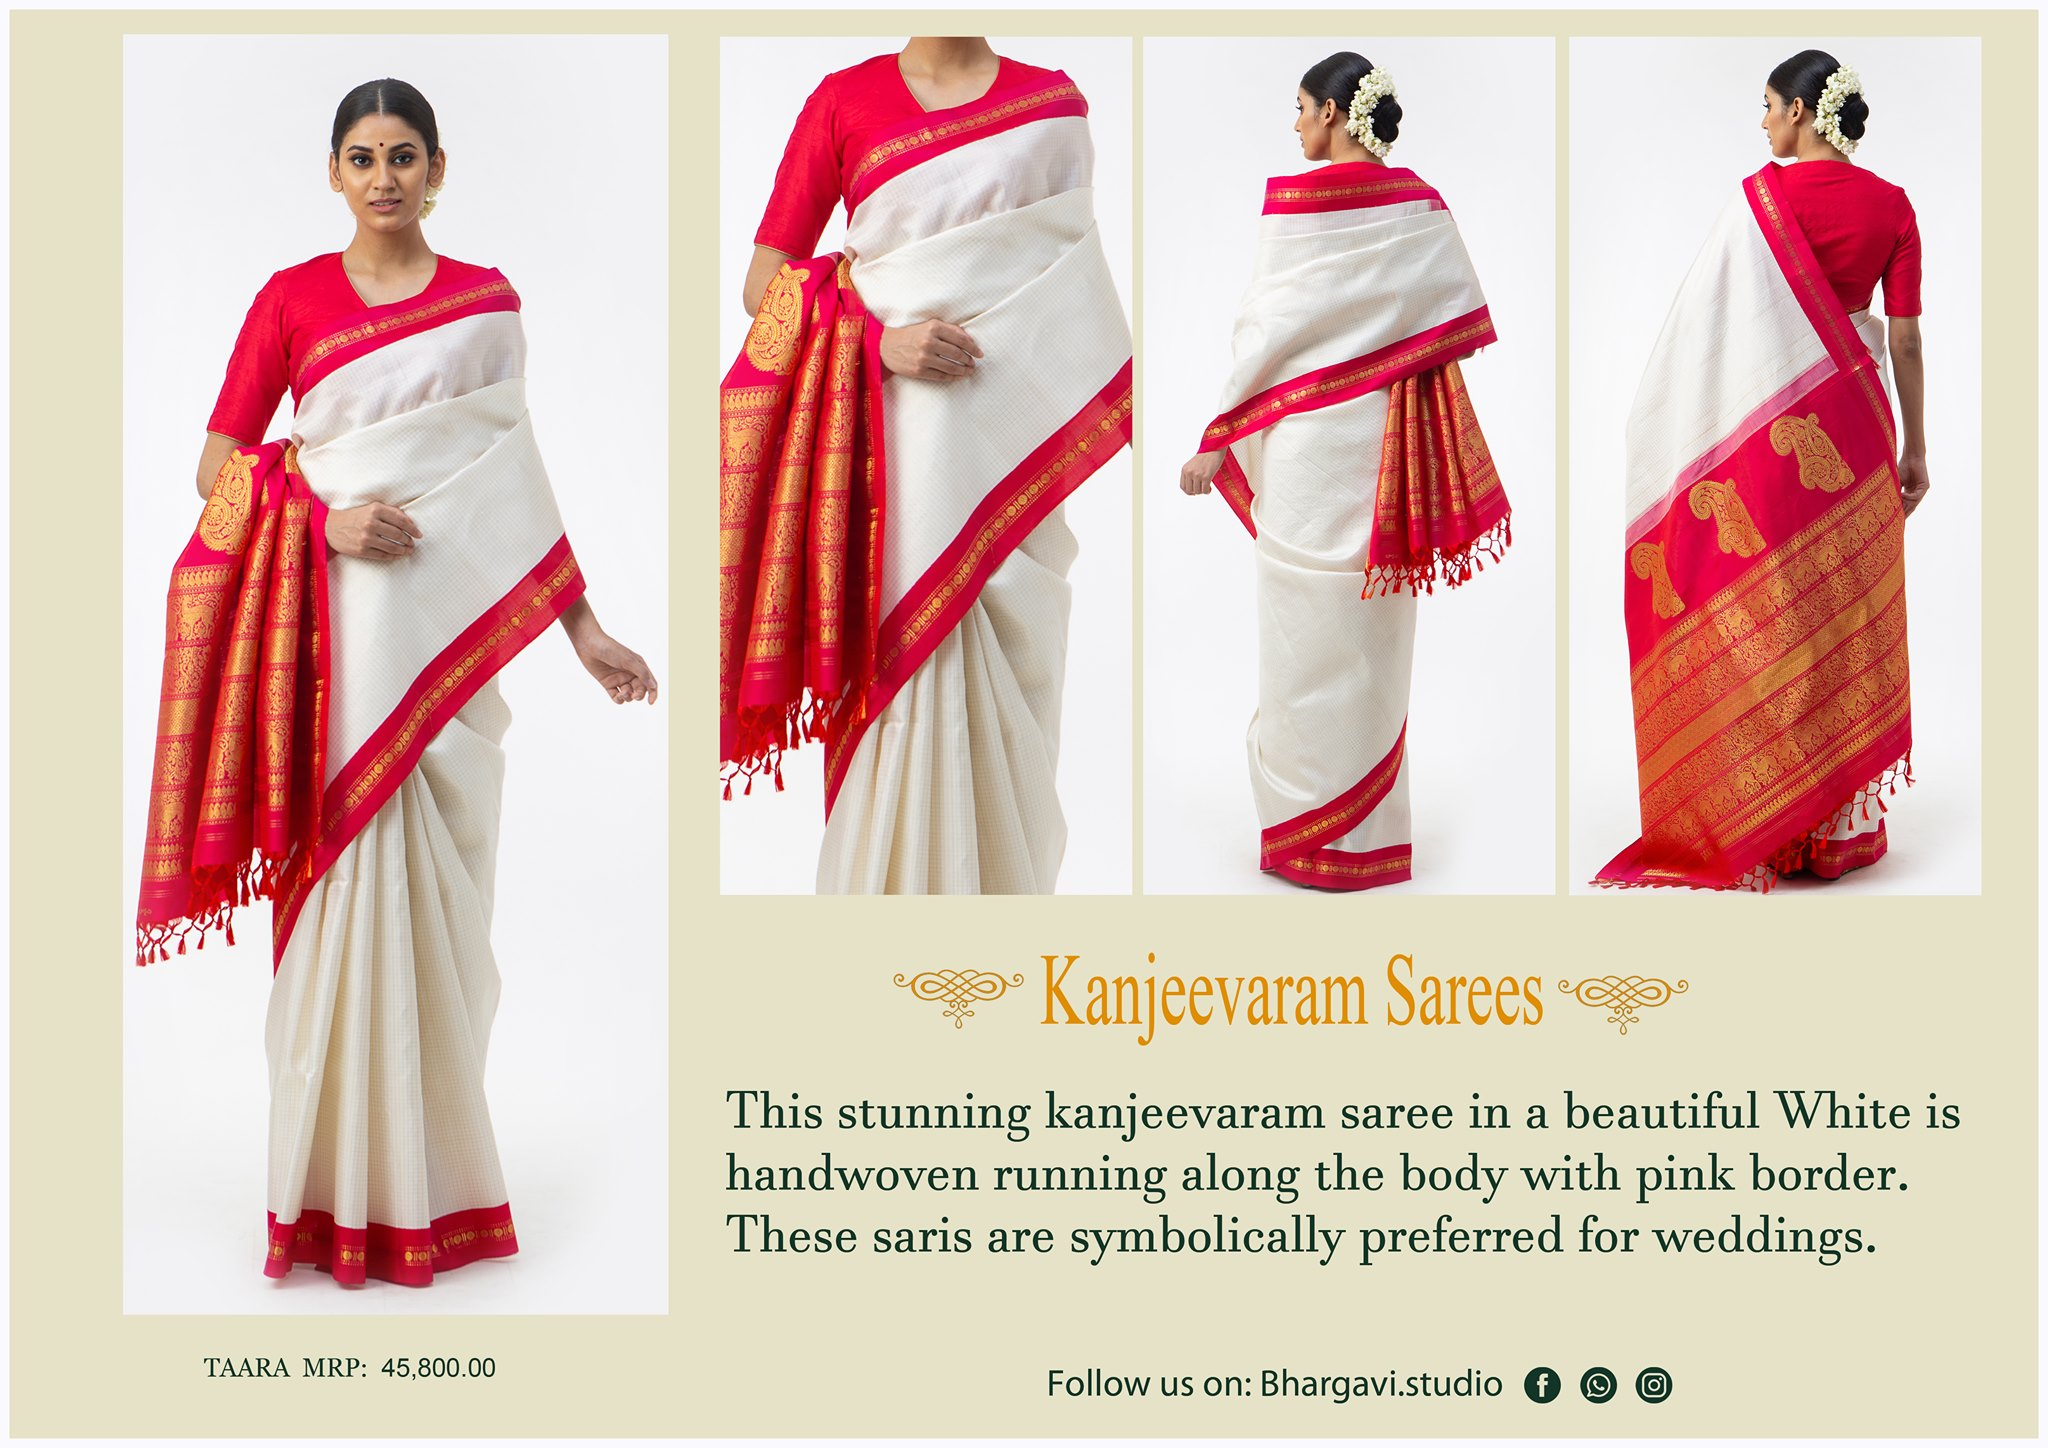 This stunning kanjeevaram saree in a beautiful white is handwoven along the body with pink big zari boarder. 2021-05-09